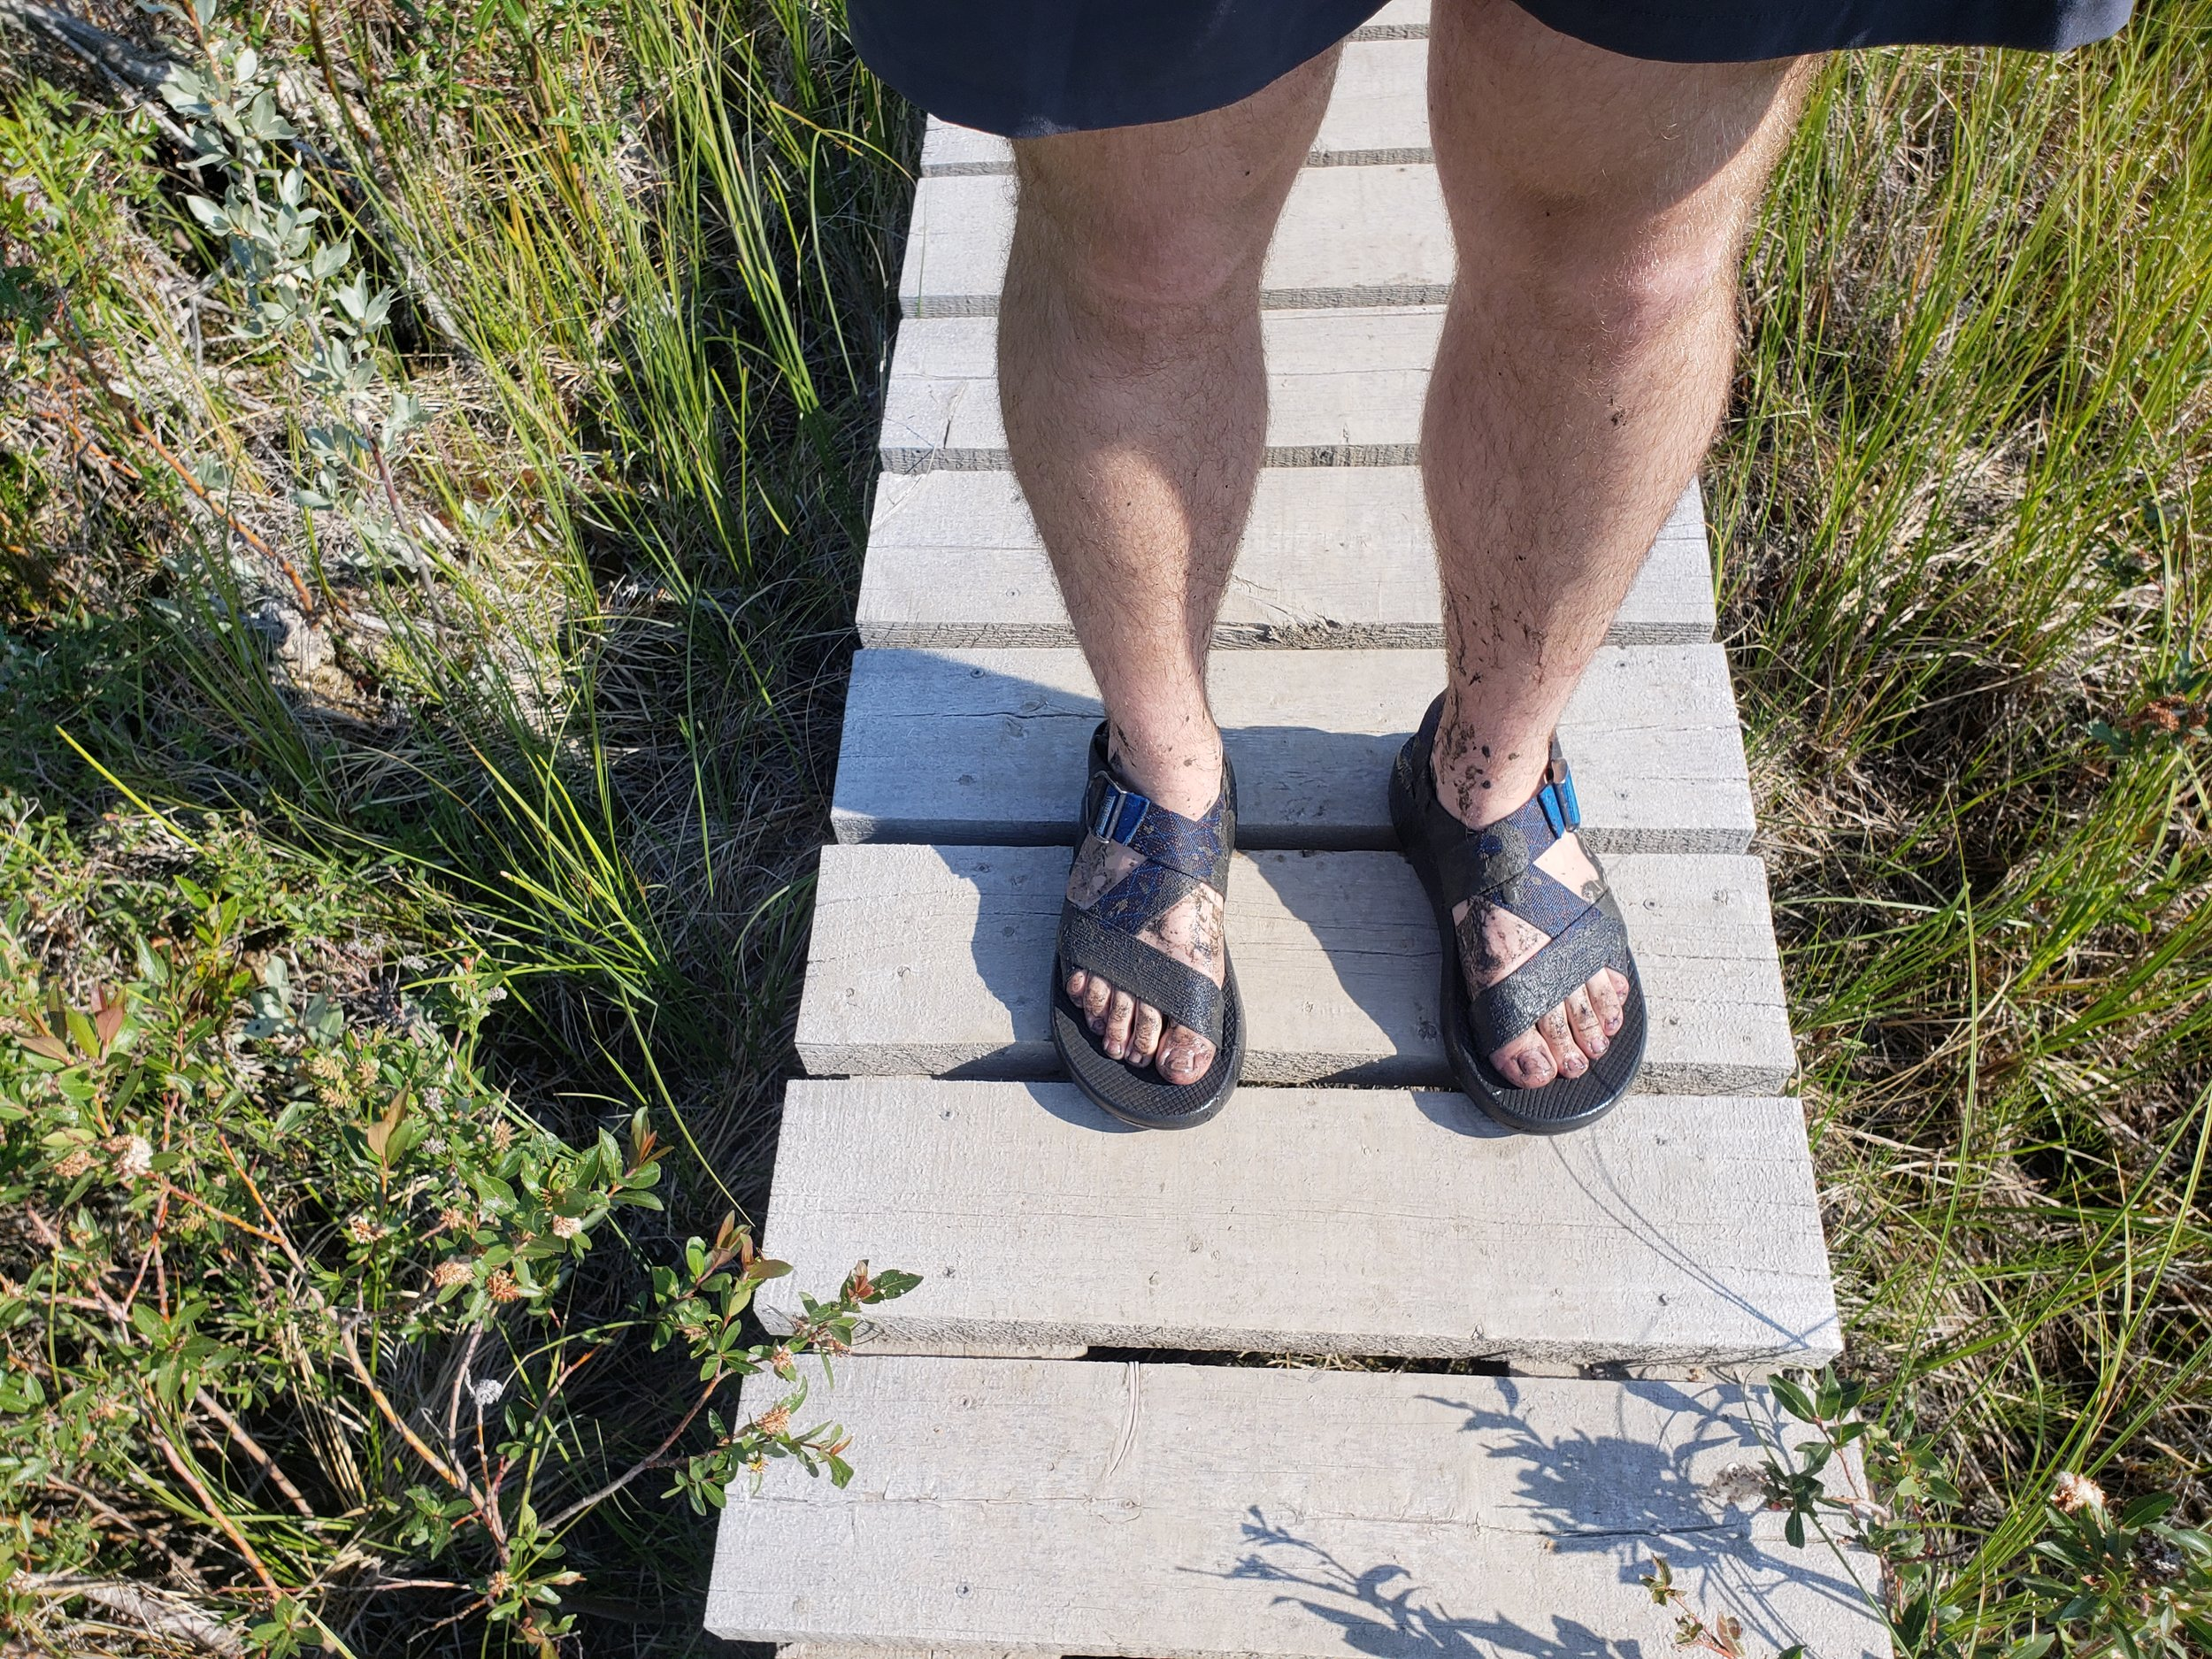 Ian's feet did not stay dry for long. There are random boardwalks throughout the trail, but they don't keep you from walking through standing water.